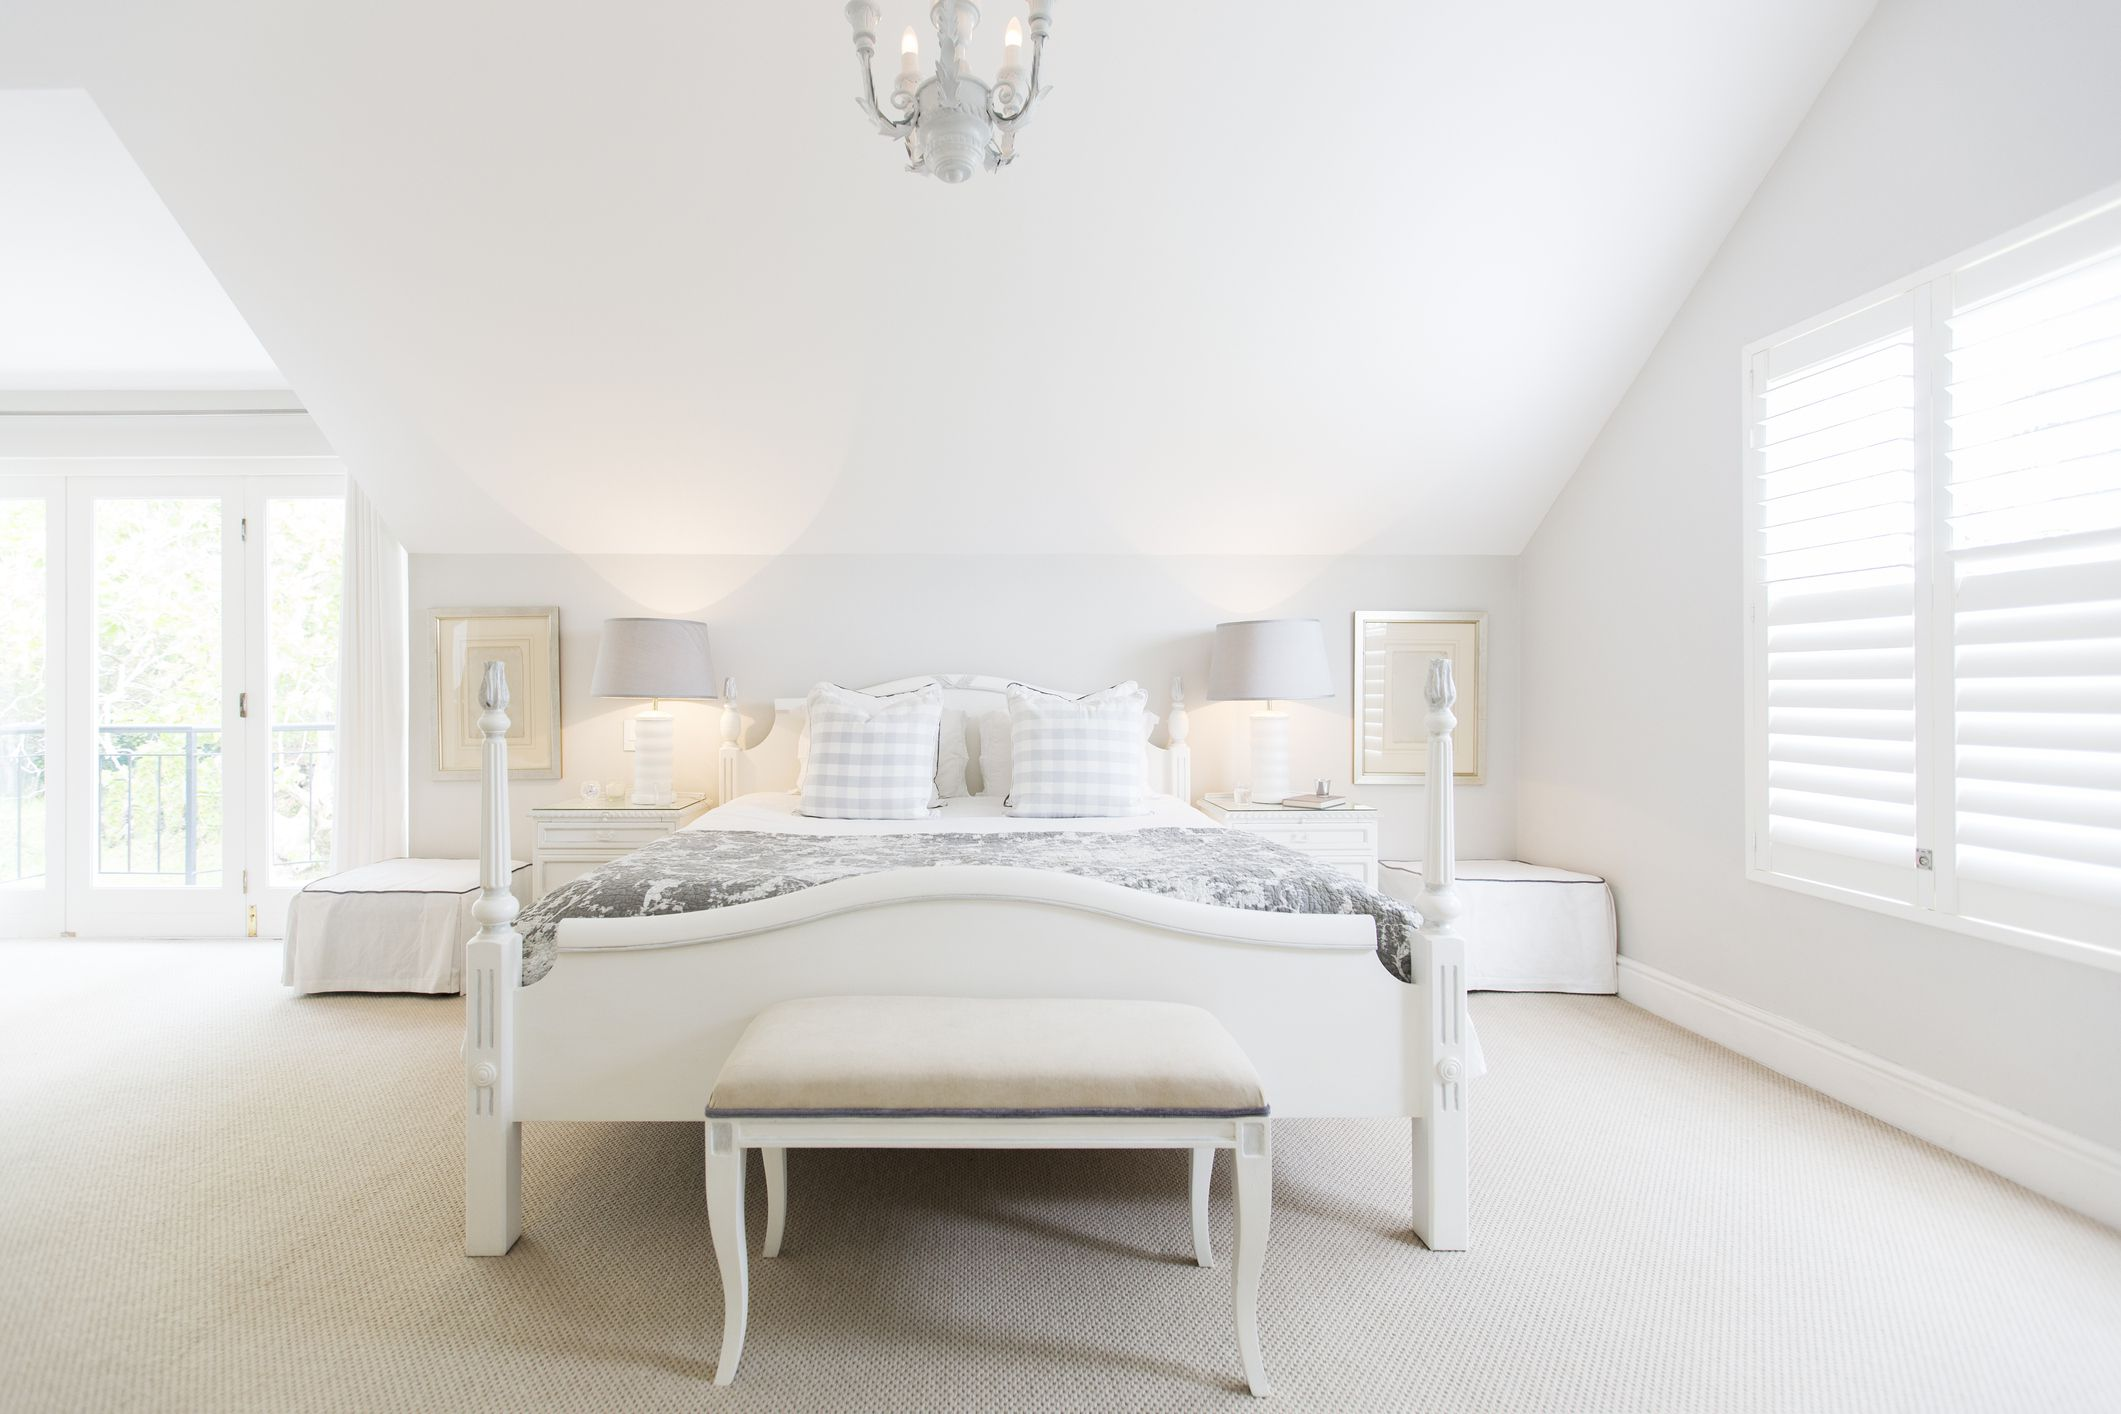 ways to use white in a bedroom 13838 | whitebedroom gettyimages 483596247 5a0d151cec2f640036a7339c